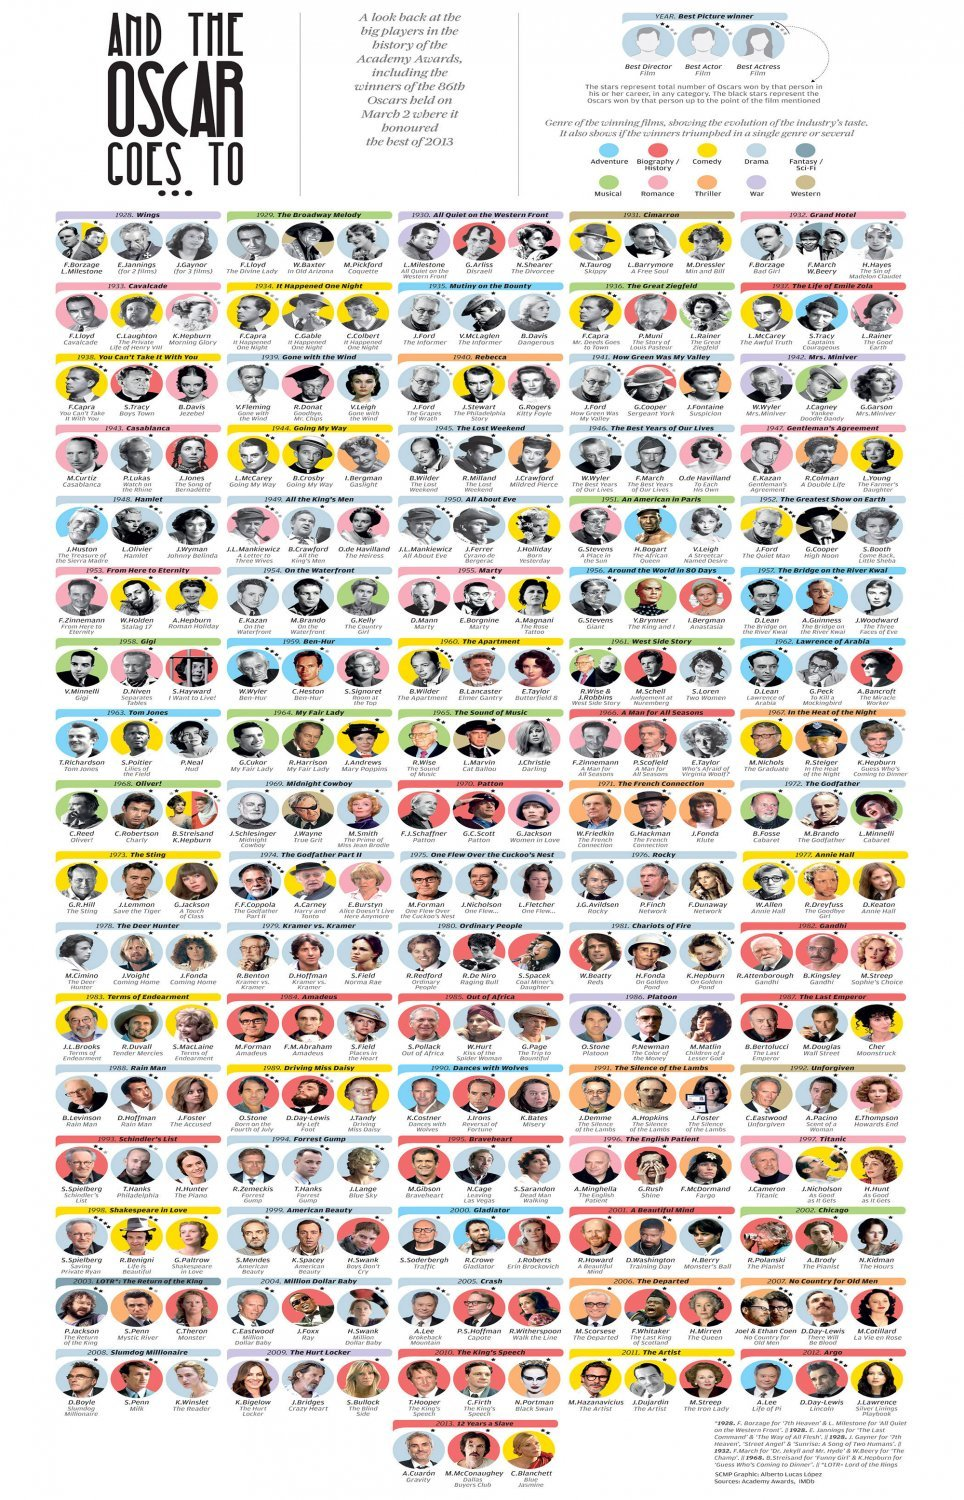 And the Oscar Goes to Oscar Winners Through the Years Chart  18x28 inches Poster Print